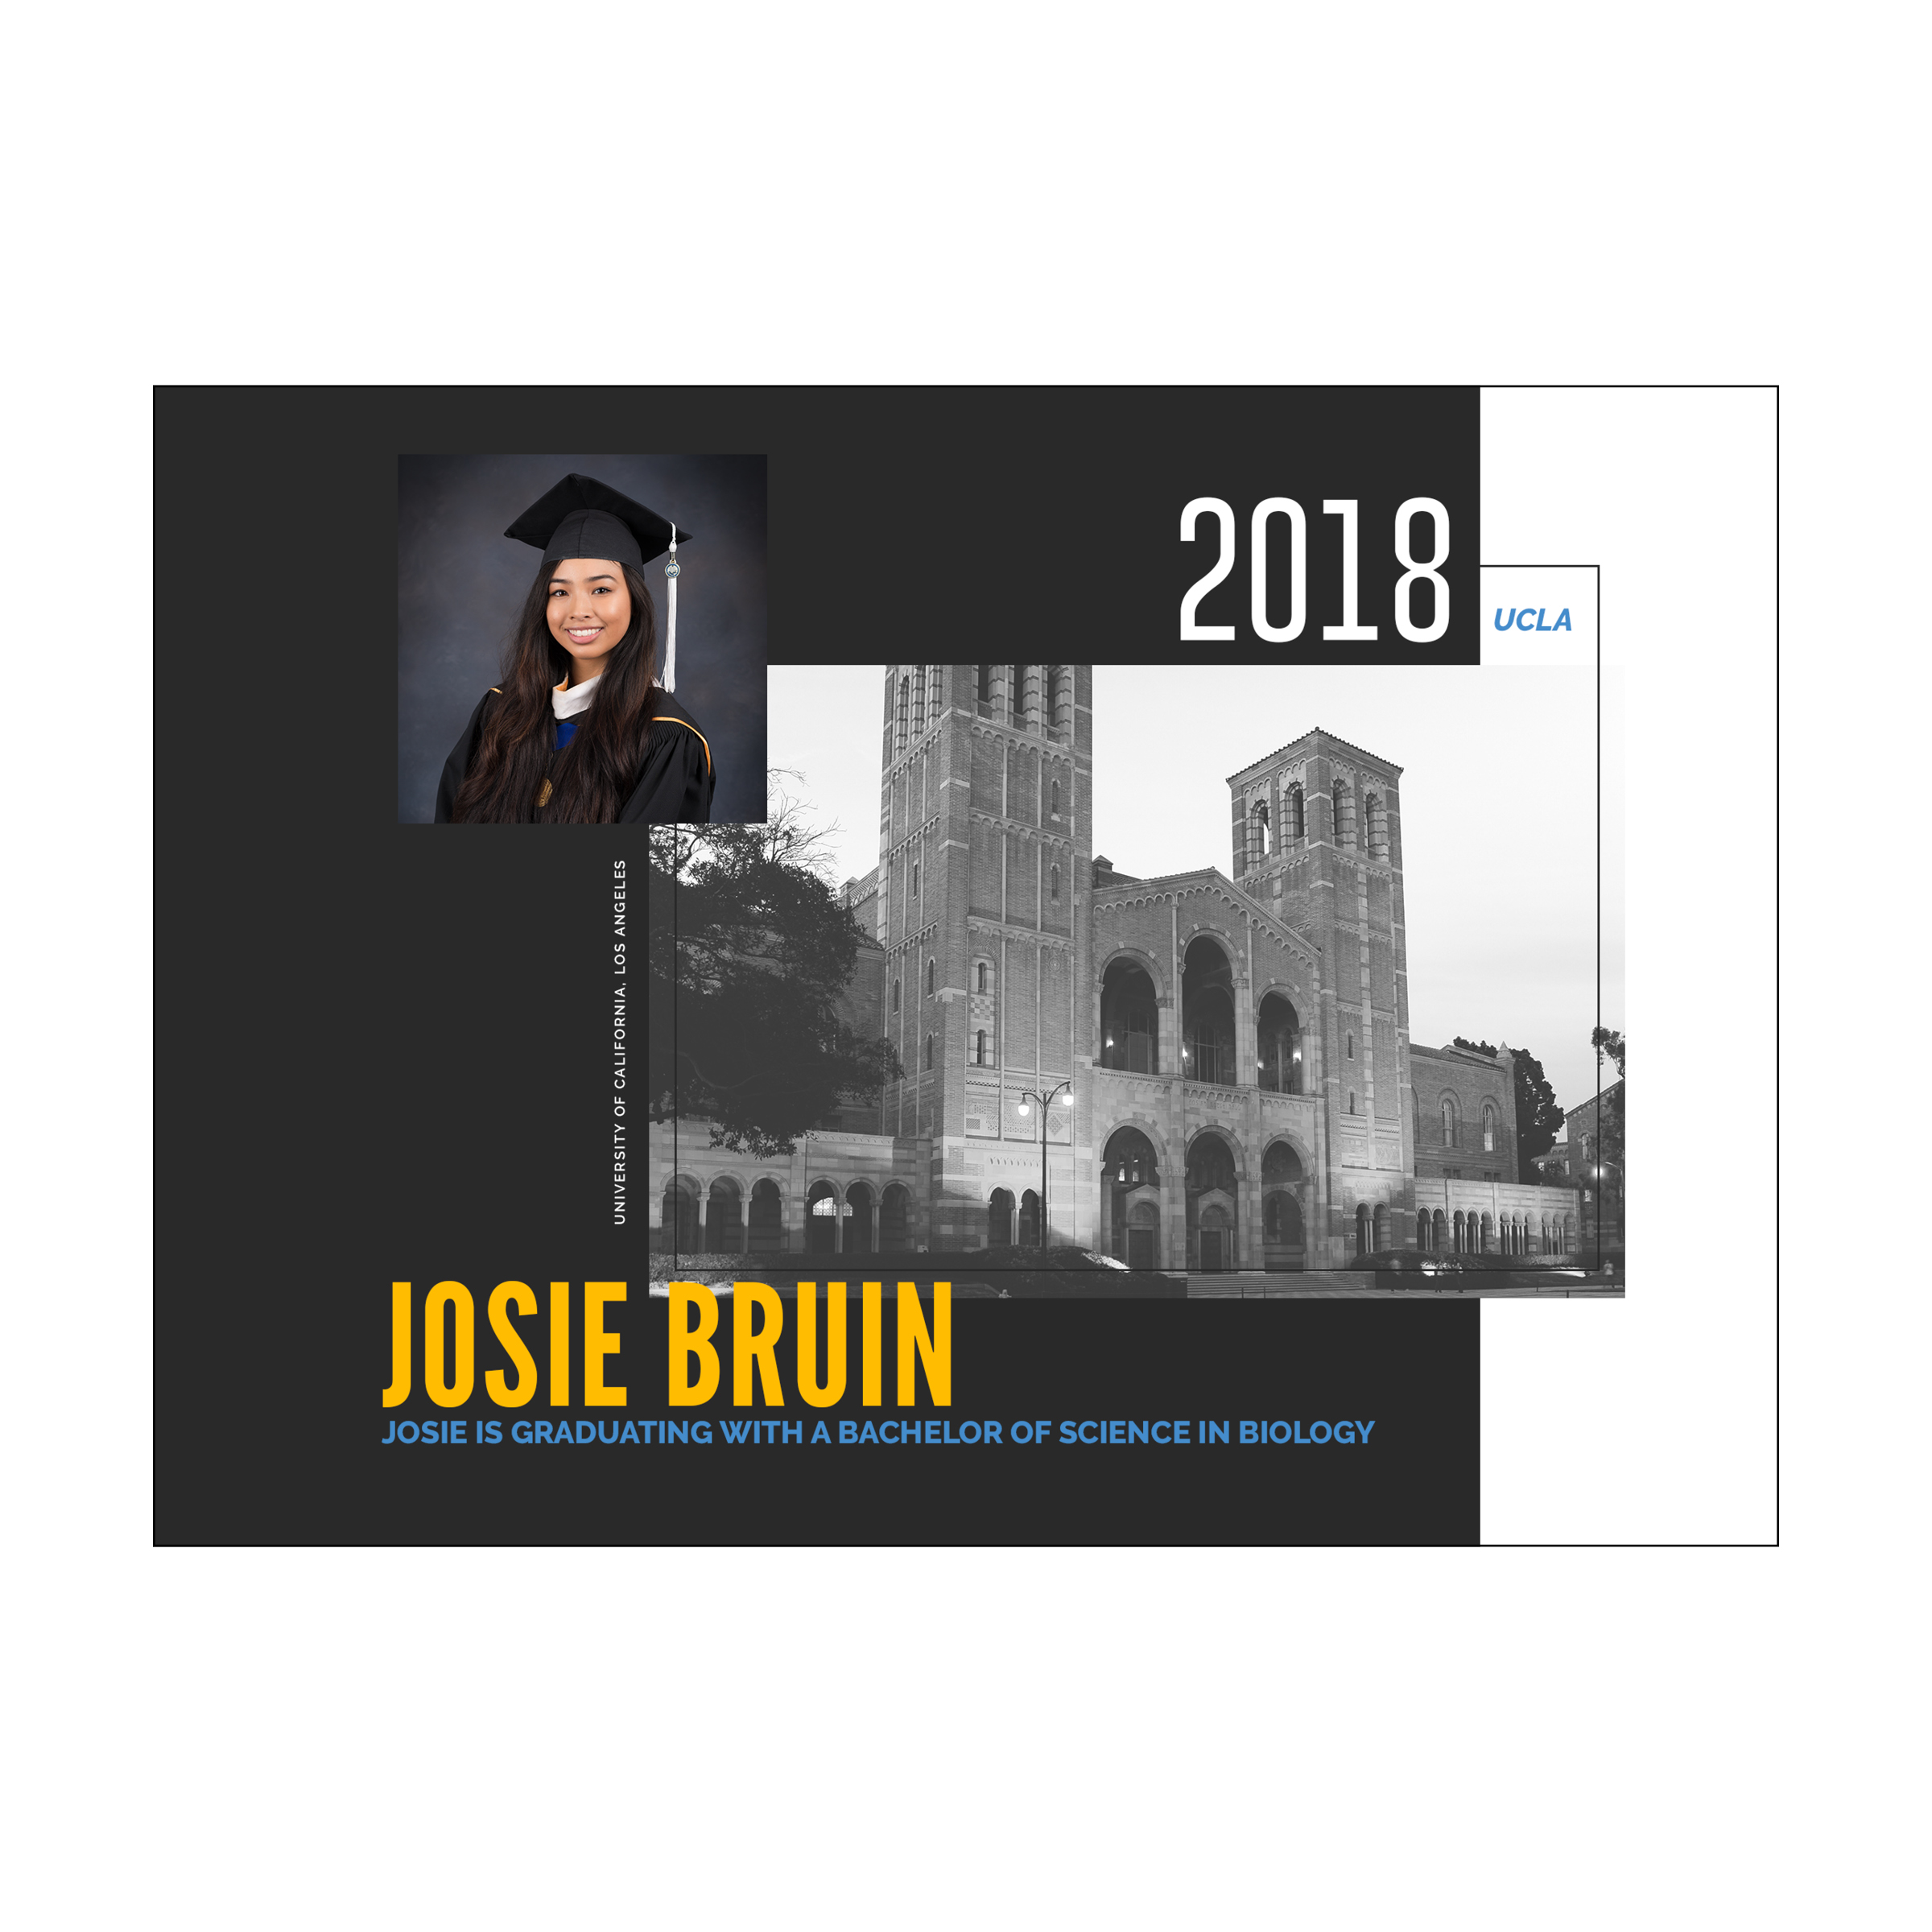 Royce Hall Graduation Announcement